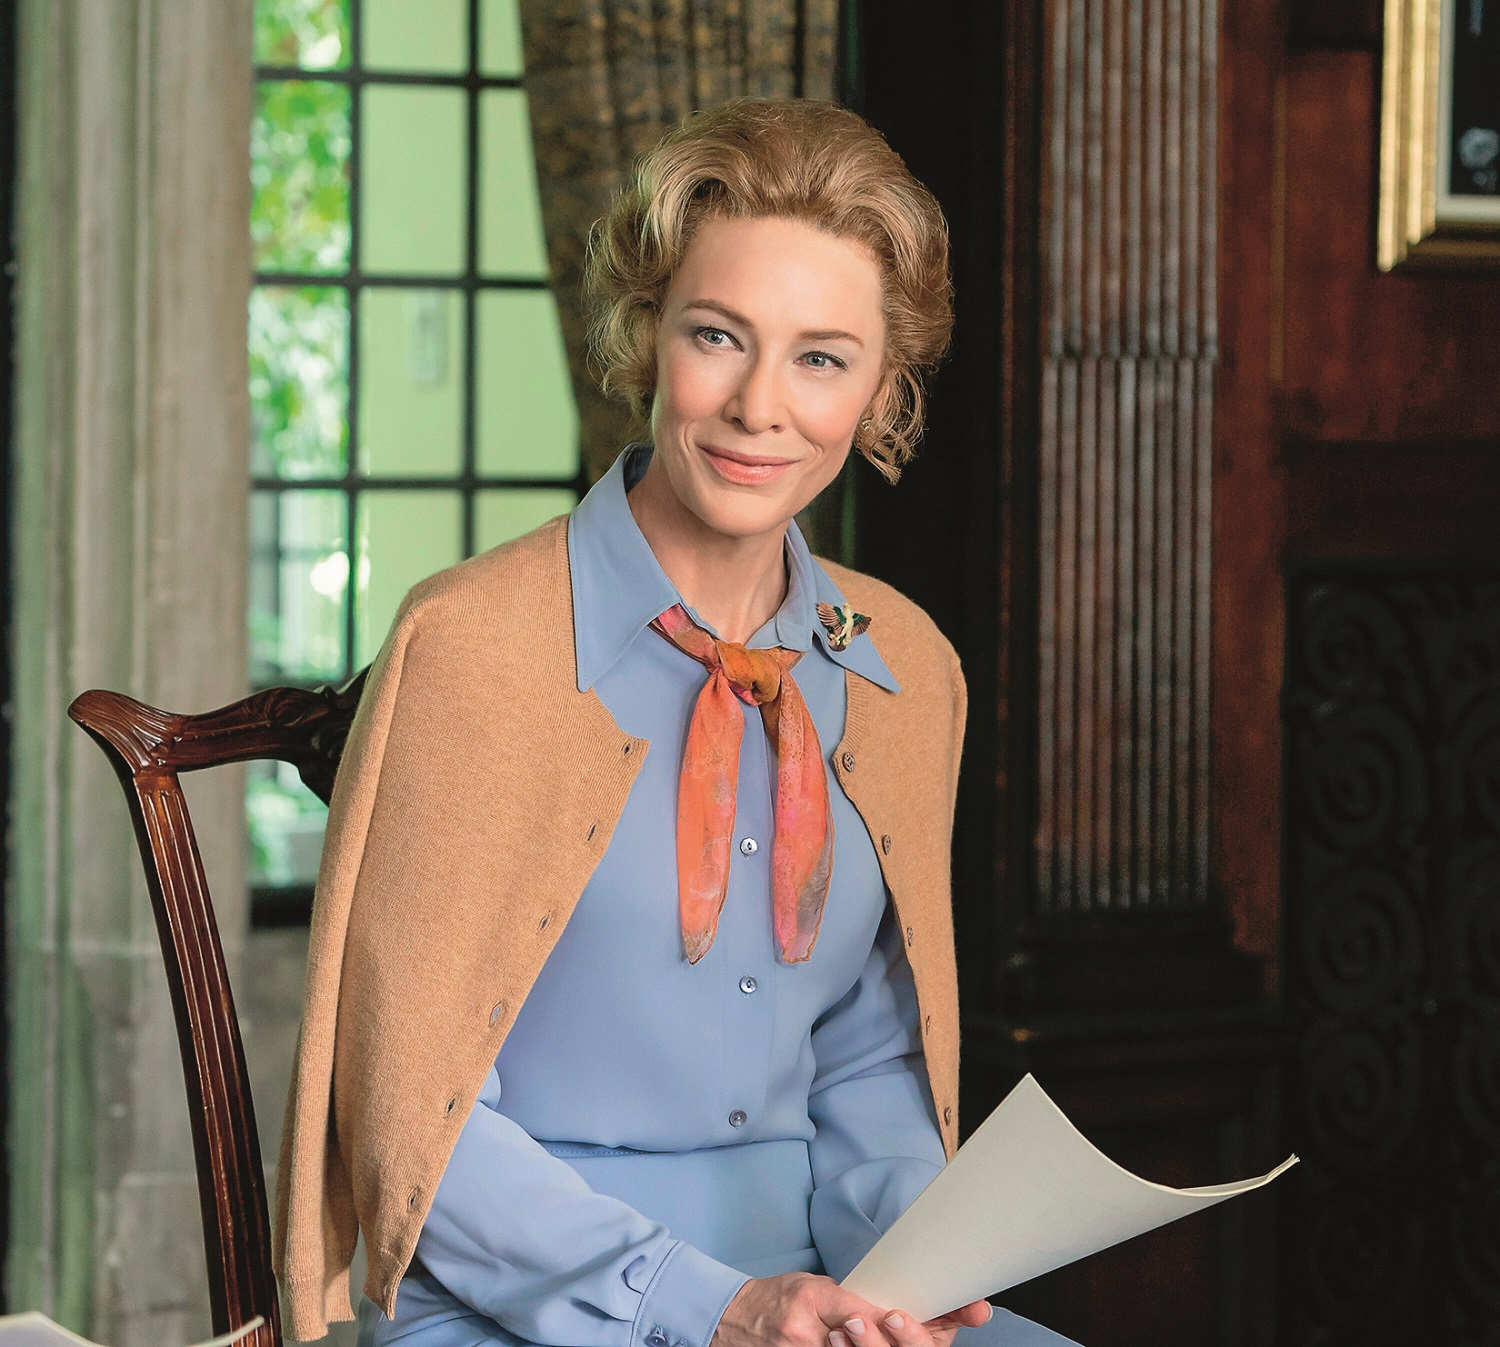 MRS. AMERICA, Cate Blanchett (as Phyllis Schlafly), 'Gloria', (Season 1, ep. 102, aired April 15, 2020). photo: Sabrina Lantos / ©FX / courtesy Everett Collection